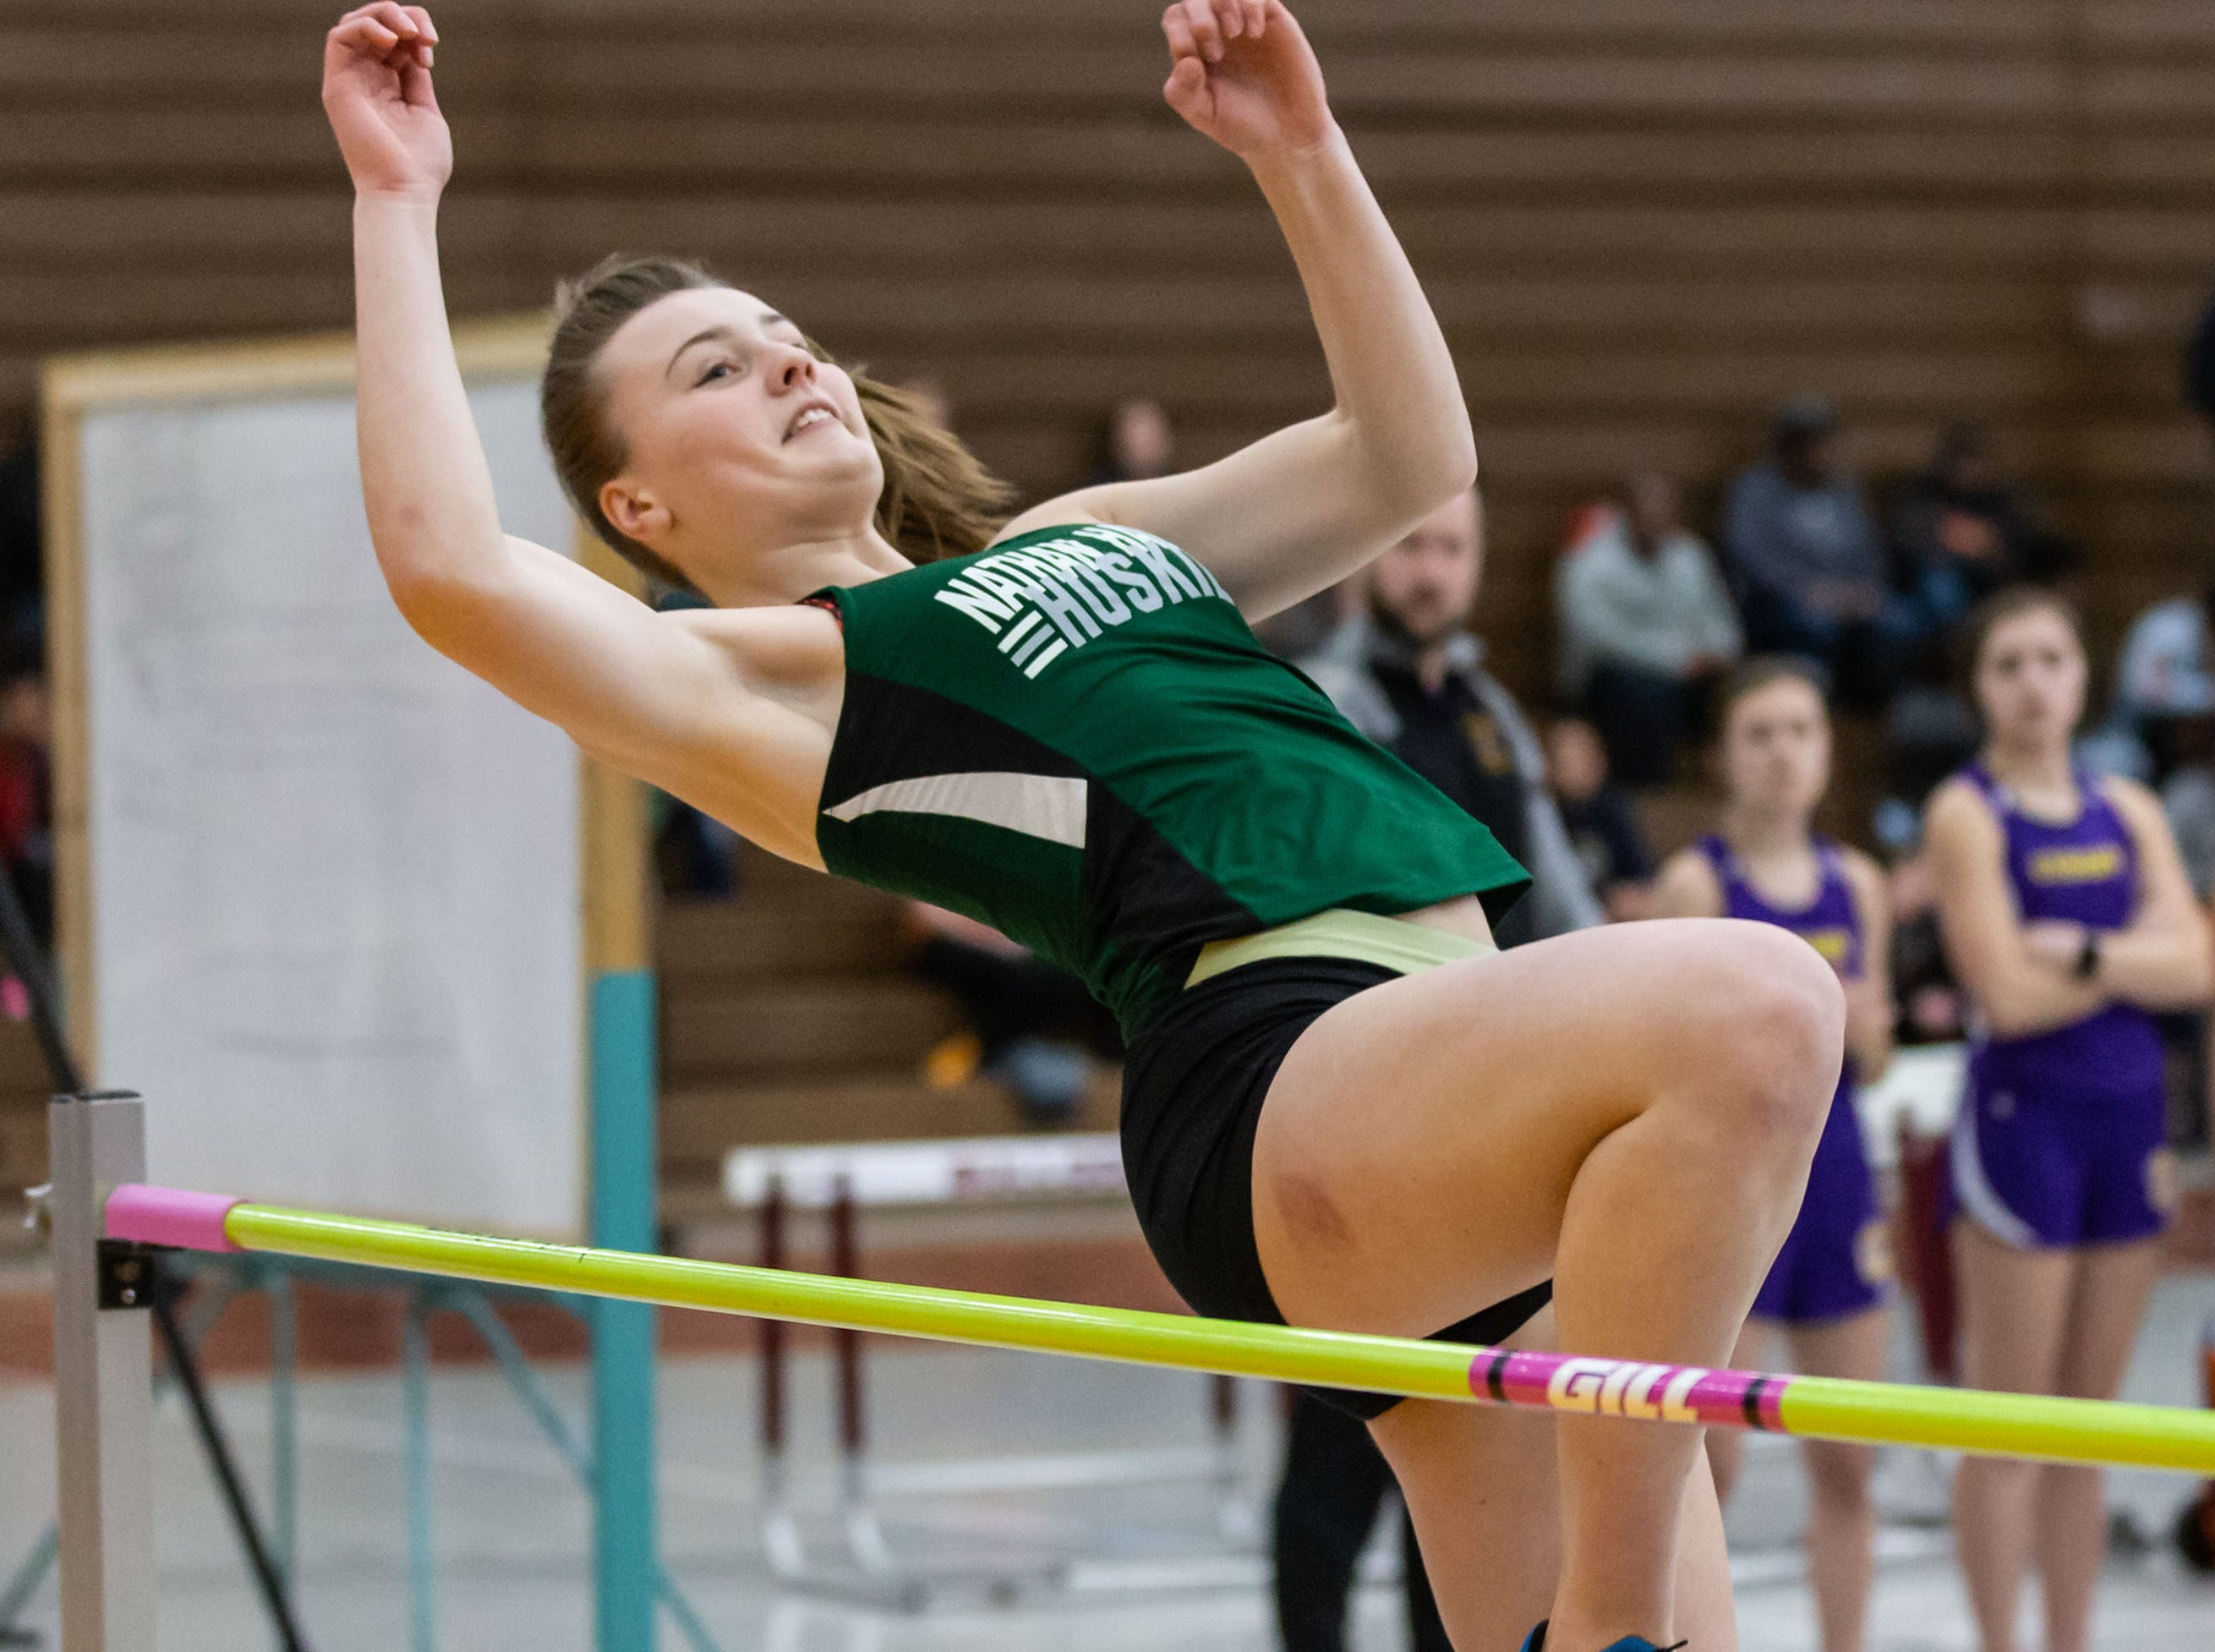 West Allis Nathan Hale's Serina Pehowski competes on the high jump at the Reinhard Bulldog Relays hosted by West Allis Central on Friday, March 15, 2019.